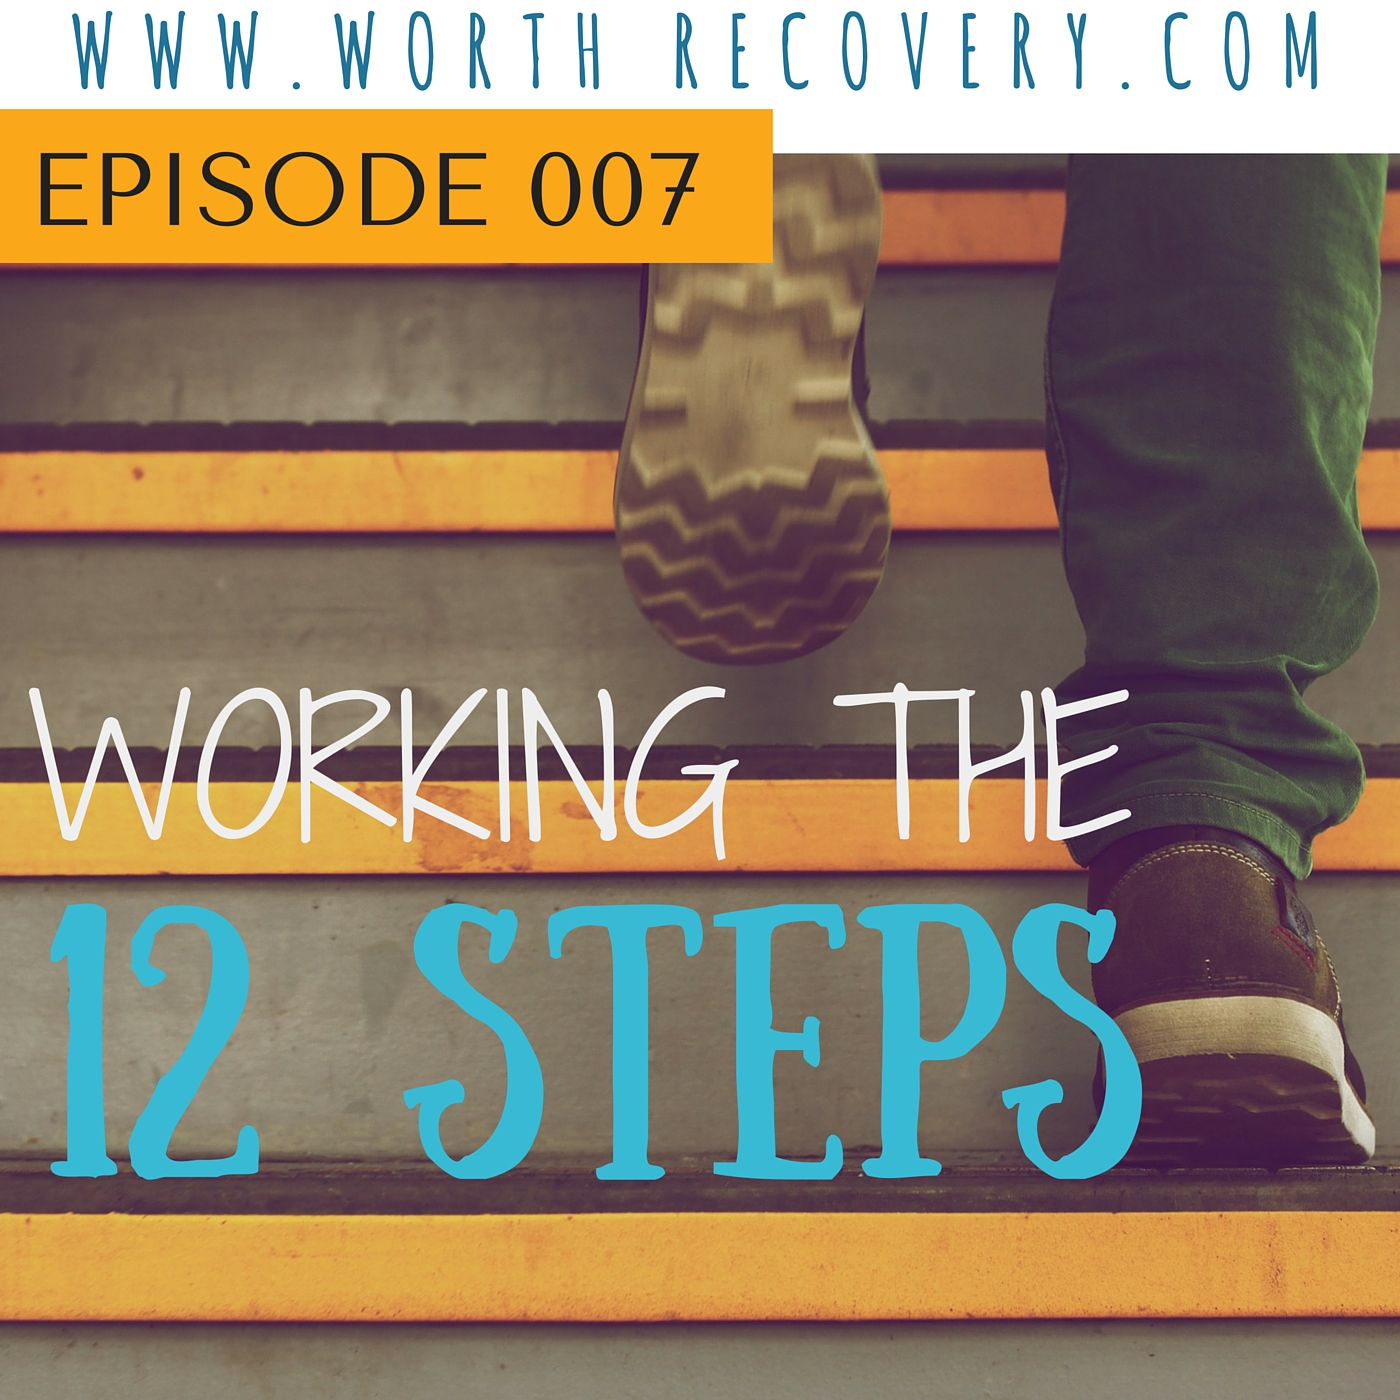 Episode 007: Working the 12 Steps